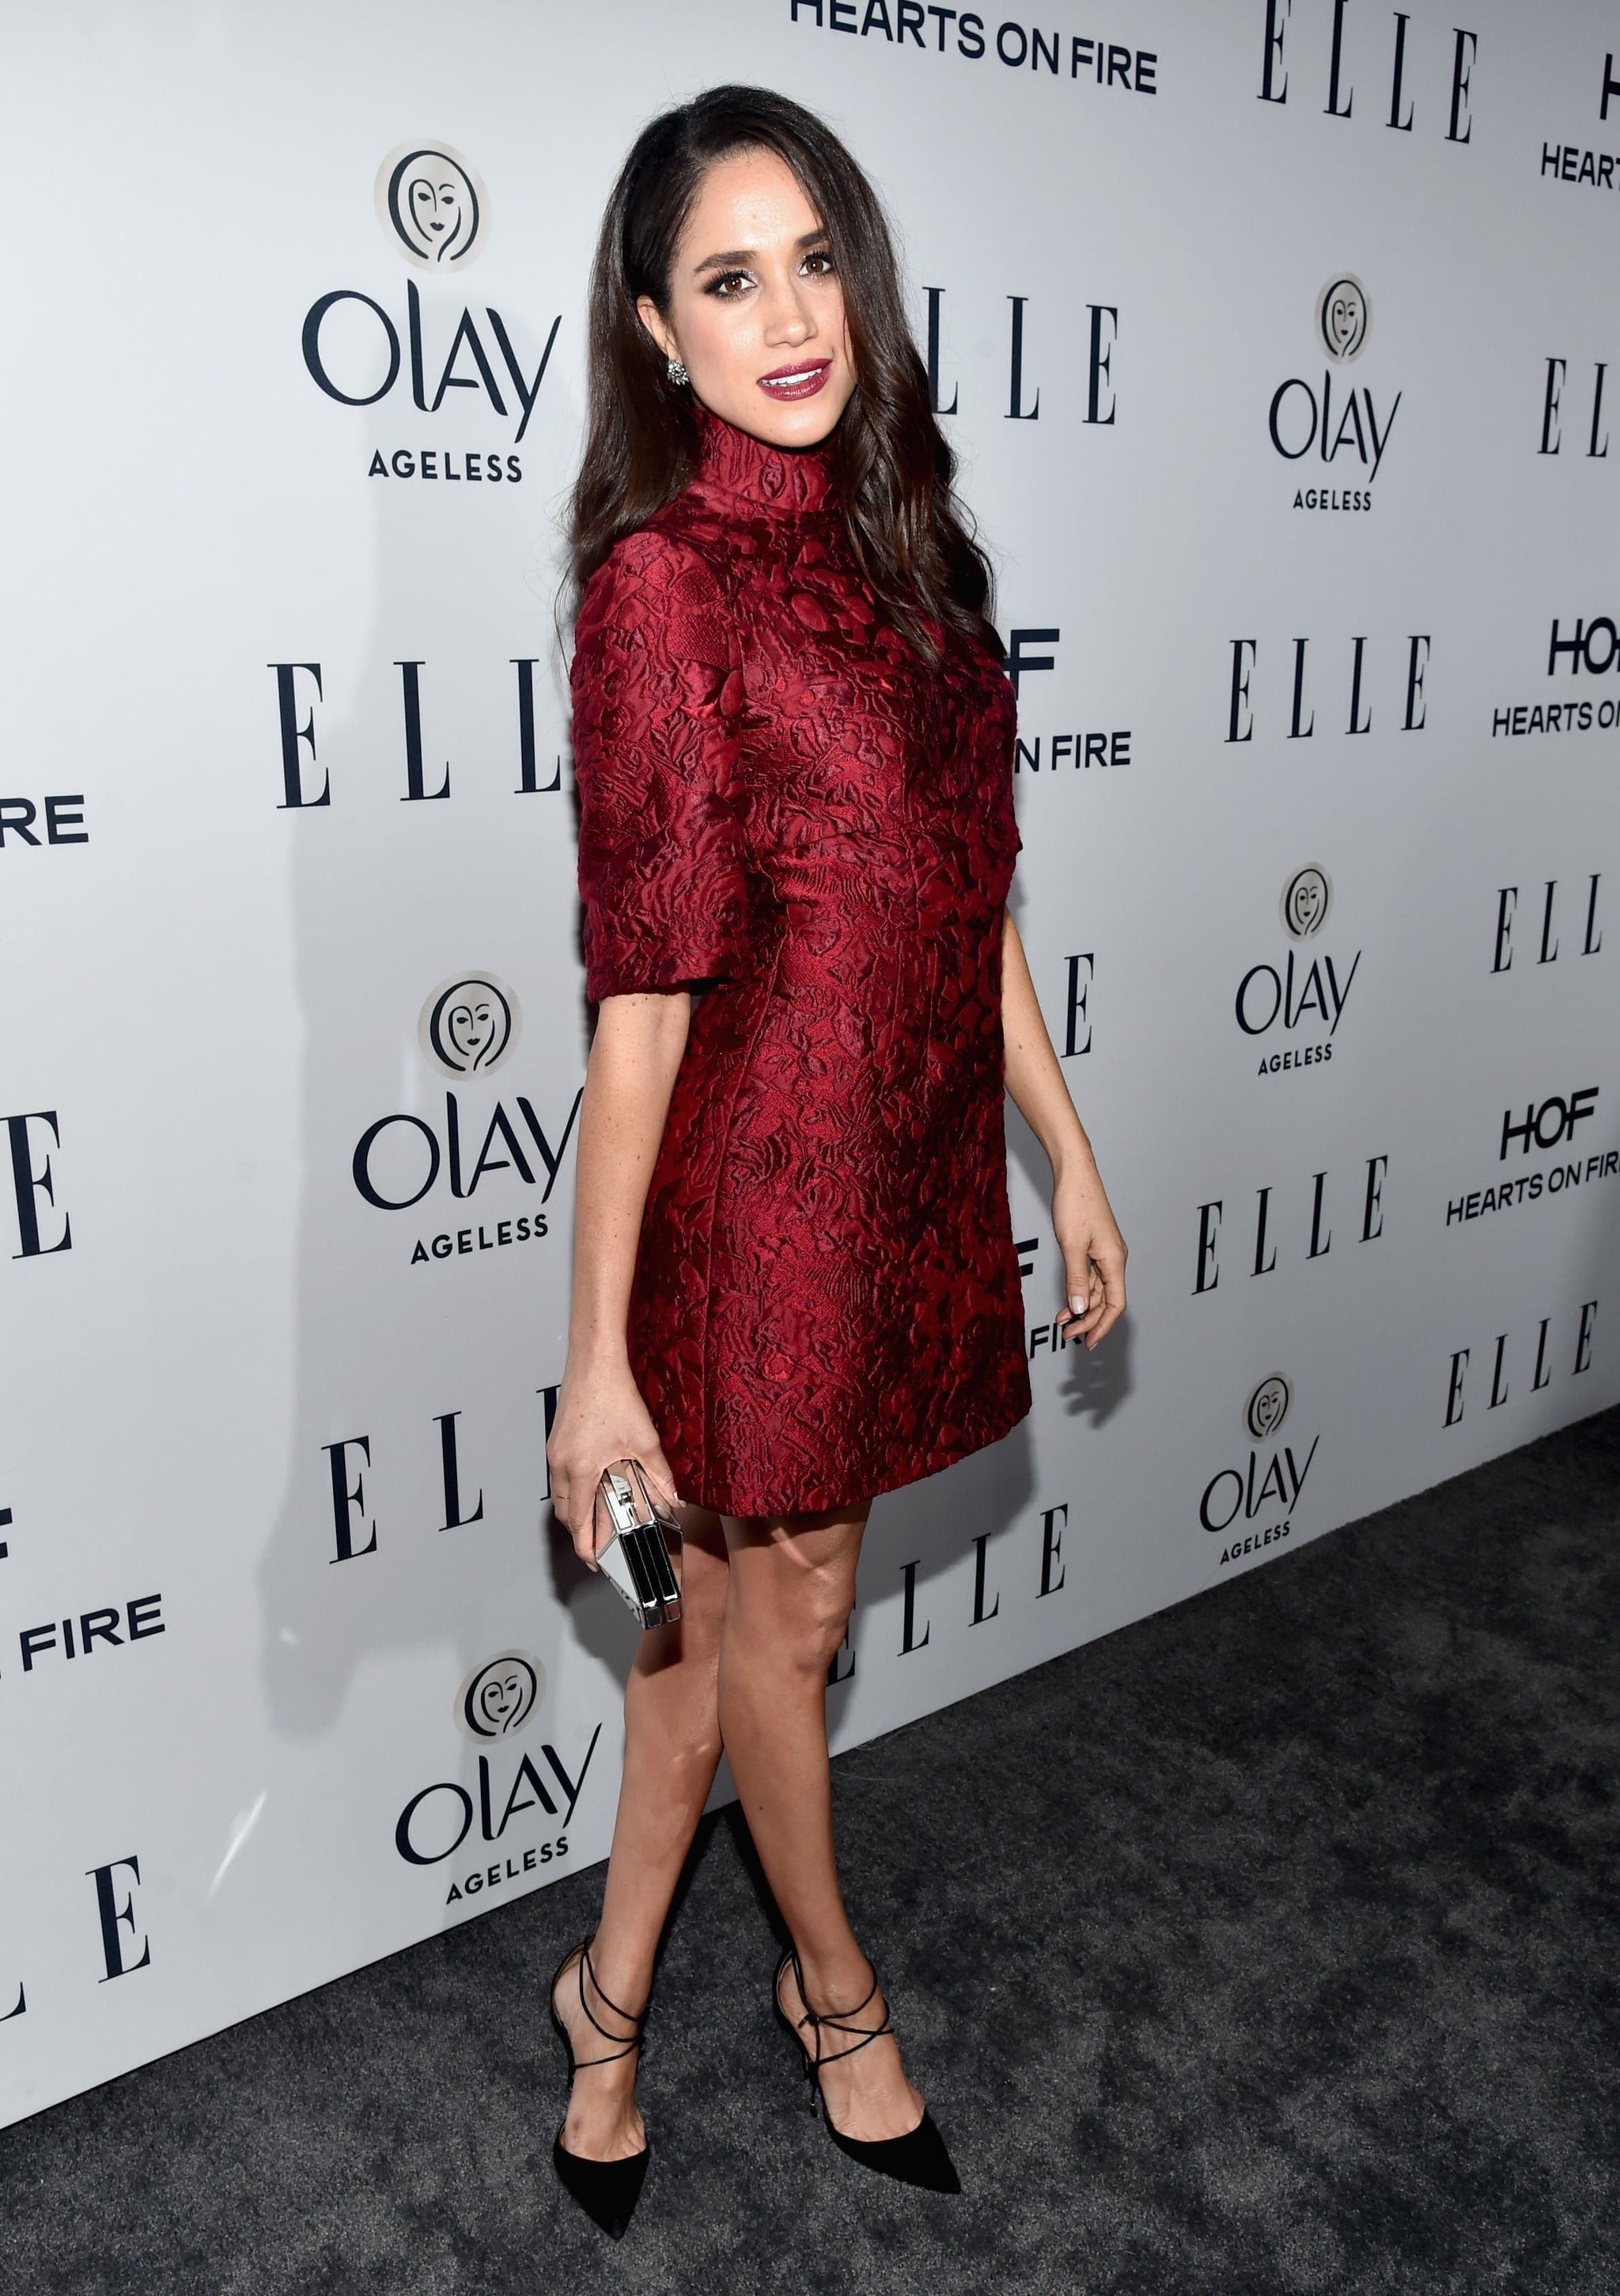 WEST HOLLYWOOD, CA - JANUARY 20:  Actress Meghan Markle attends ELLE's 6th Annual Women In Television Dinner at Sunset Tower Hotel on January 20, 2016 in West Hollywood, California.  (Photo by Alberto E. Rodriguez/Getty Images for ELLE)